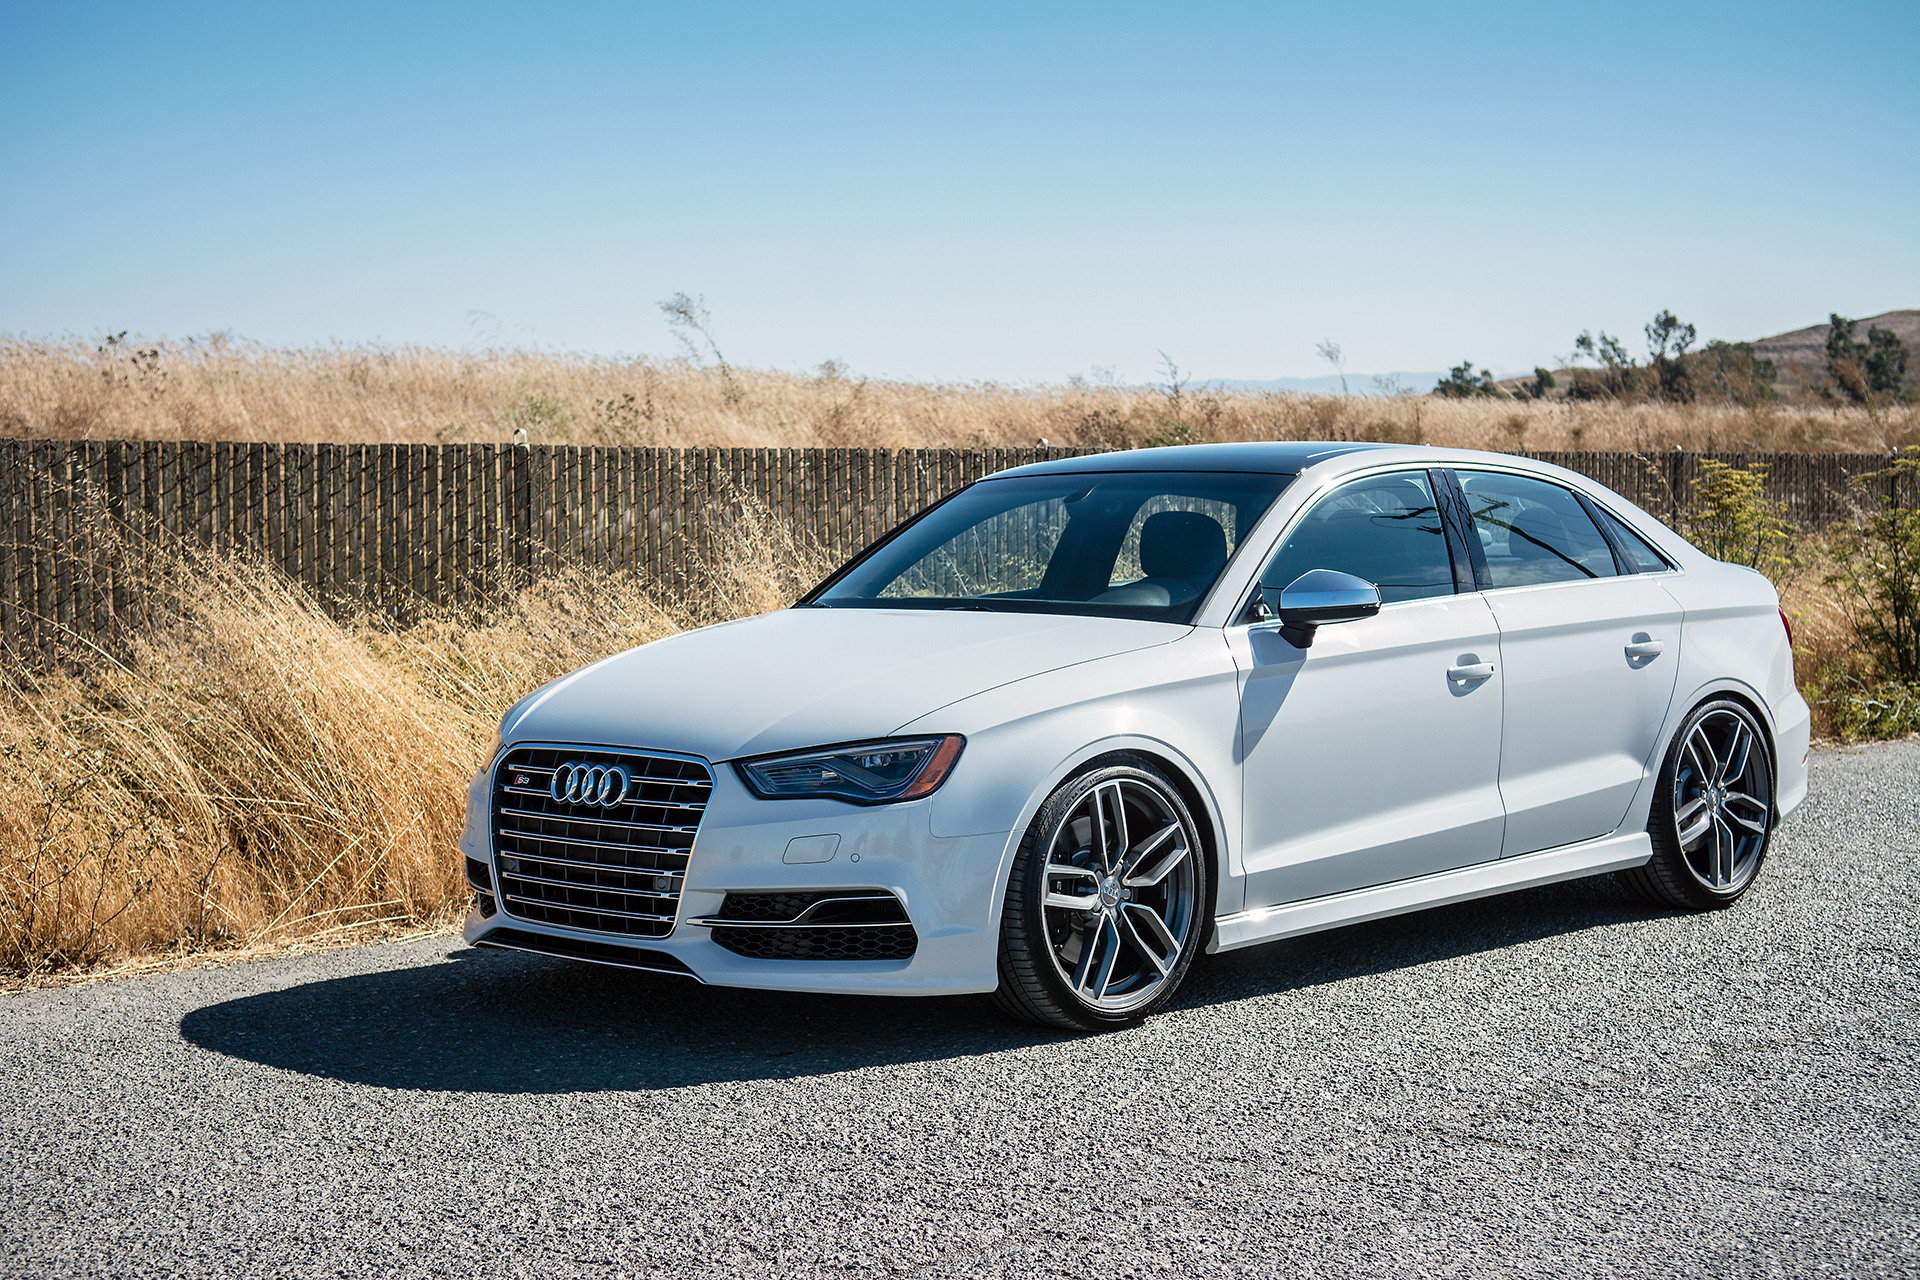 Audi S3 Suspension Upgrades: Lowered on Bilstein PSS10 Coilover Kit